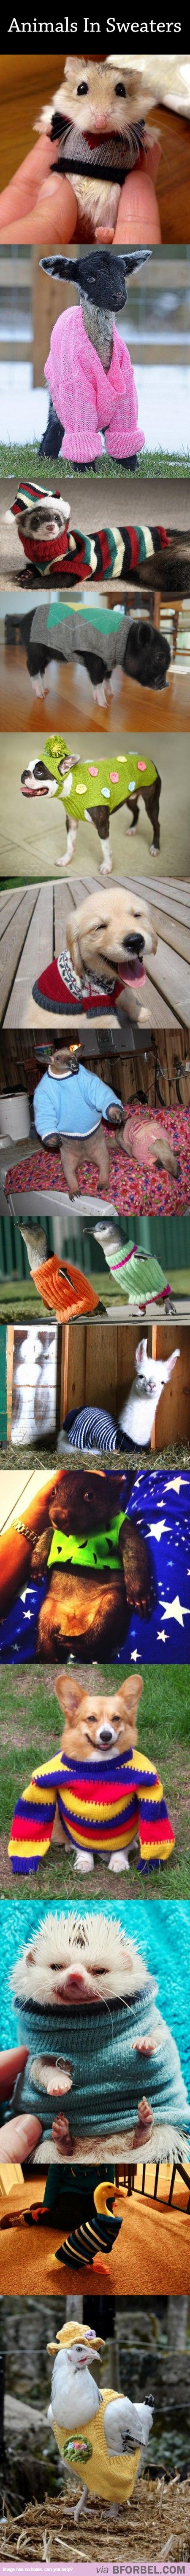 14 Adorable Animals In Sweaters!